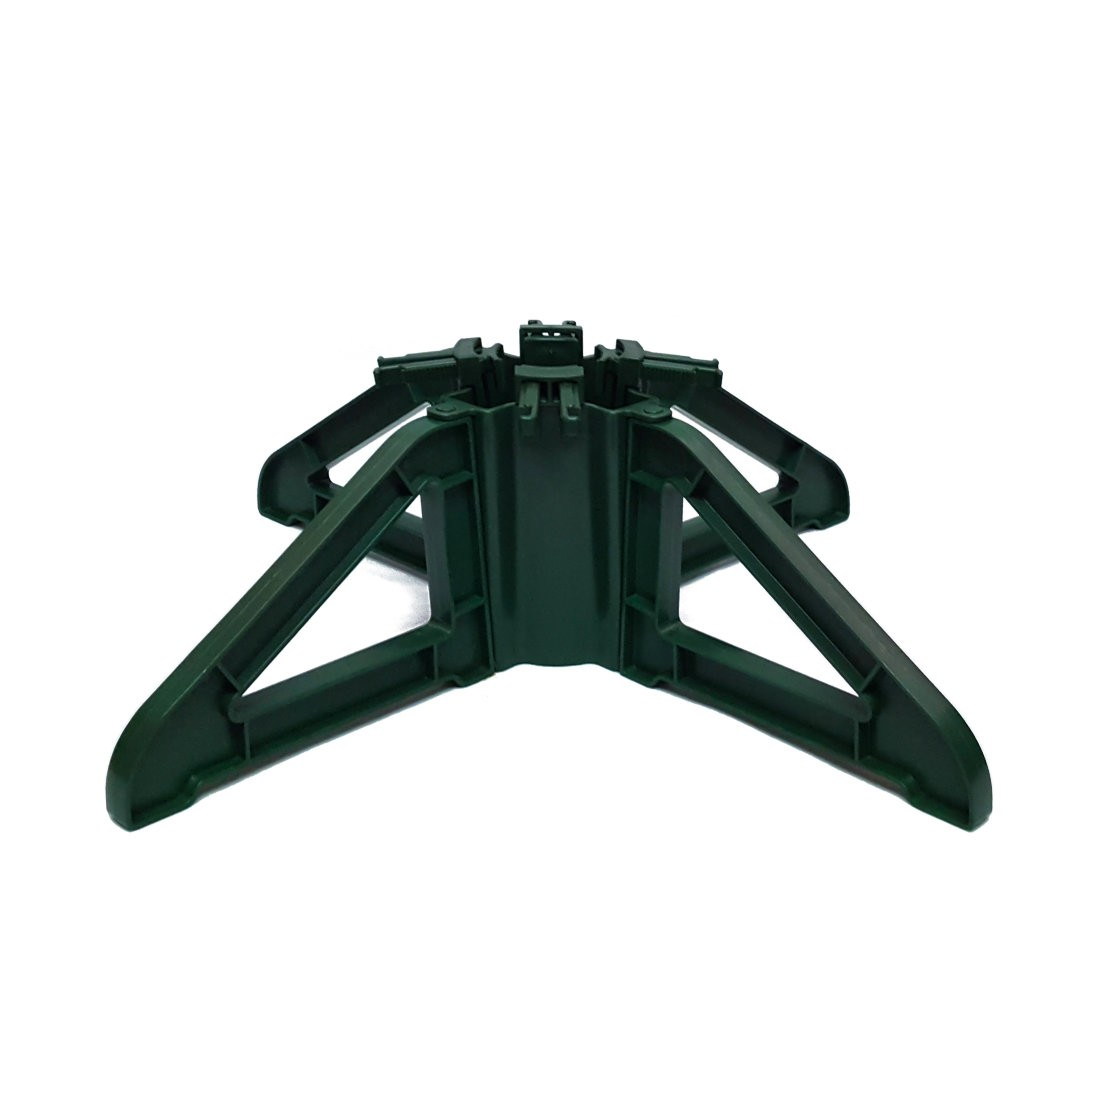 True leg christmas tree stand for real trees up to ft